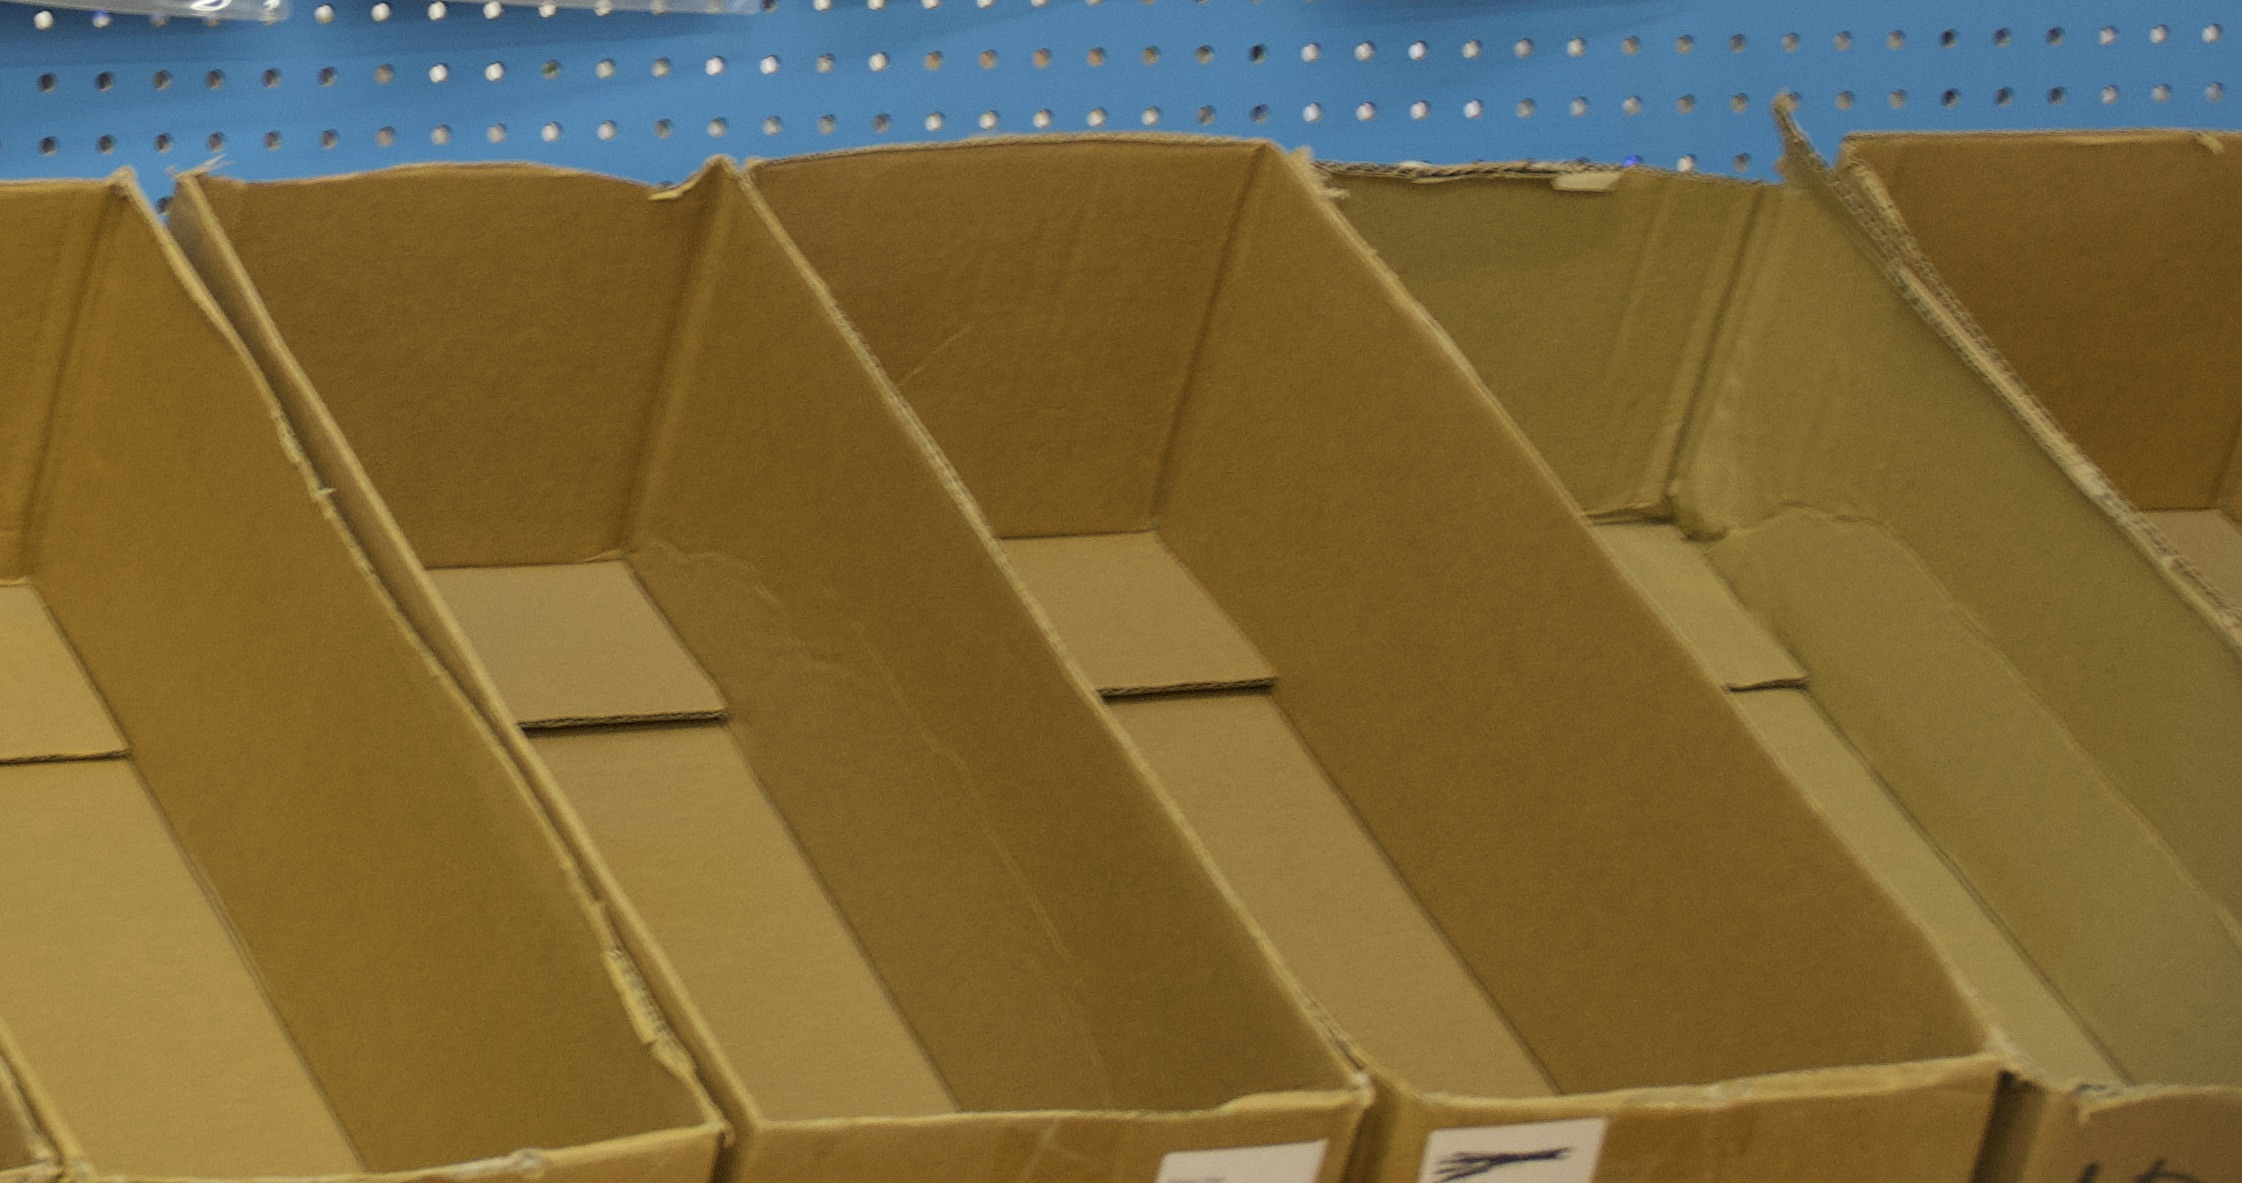 A series of open, empty cardboard boxes in a row